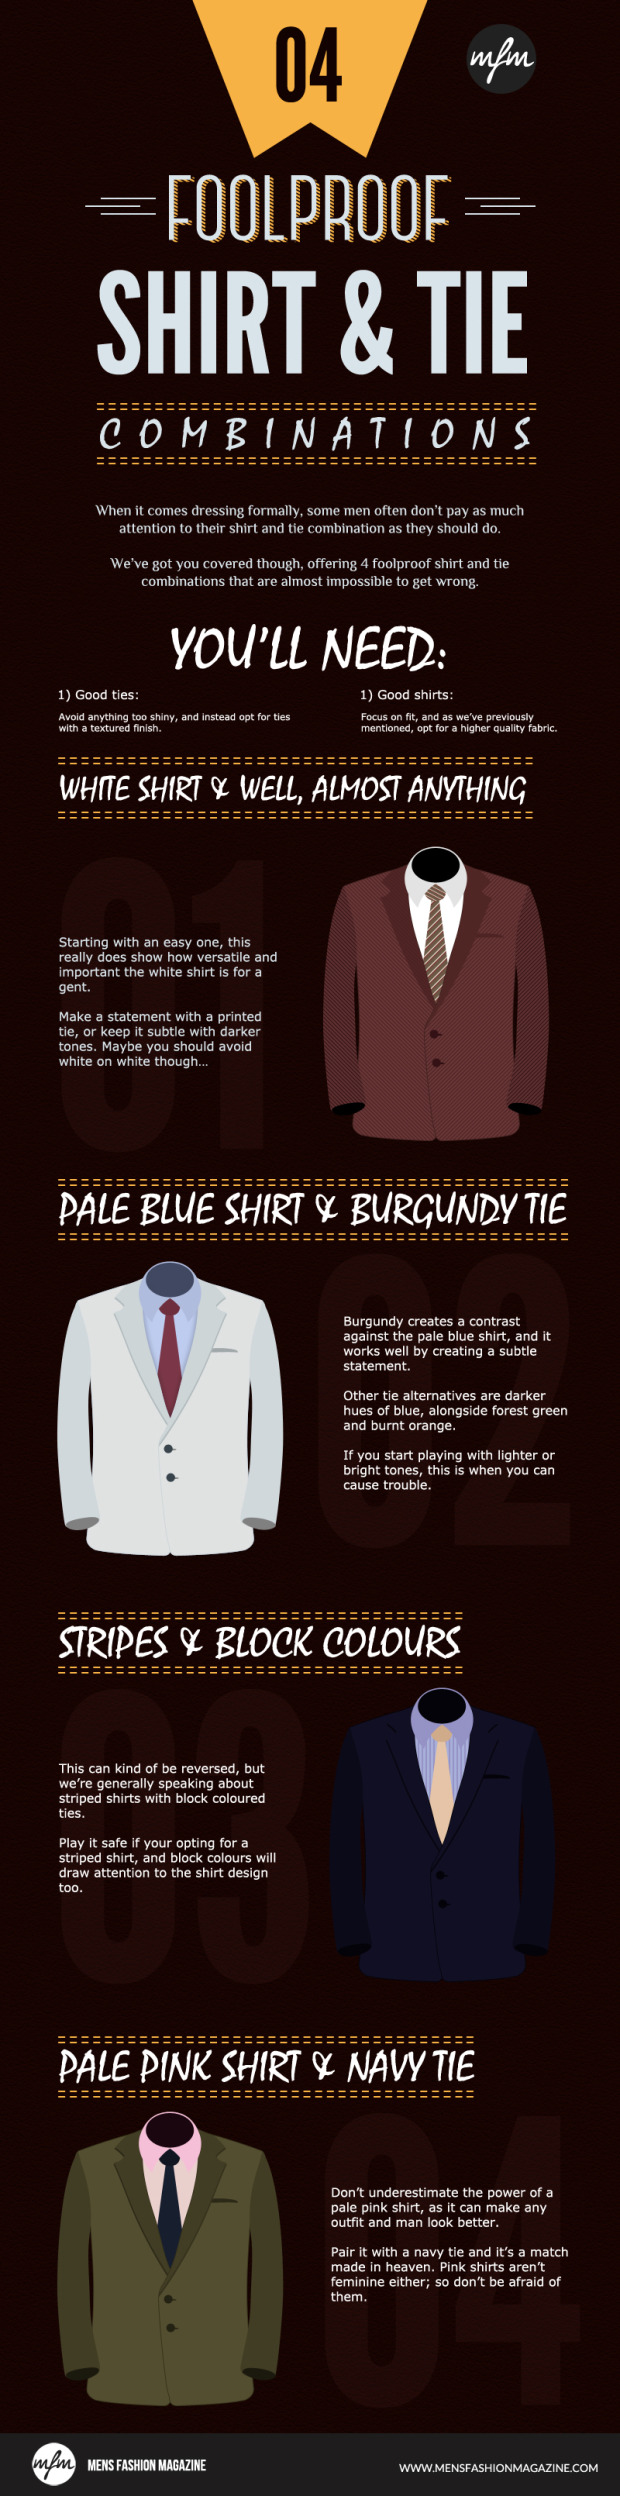 4-foolproof-shirt-and-tie-combinations